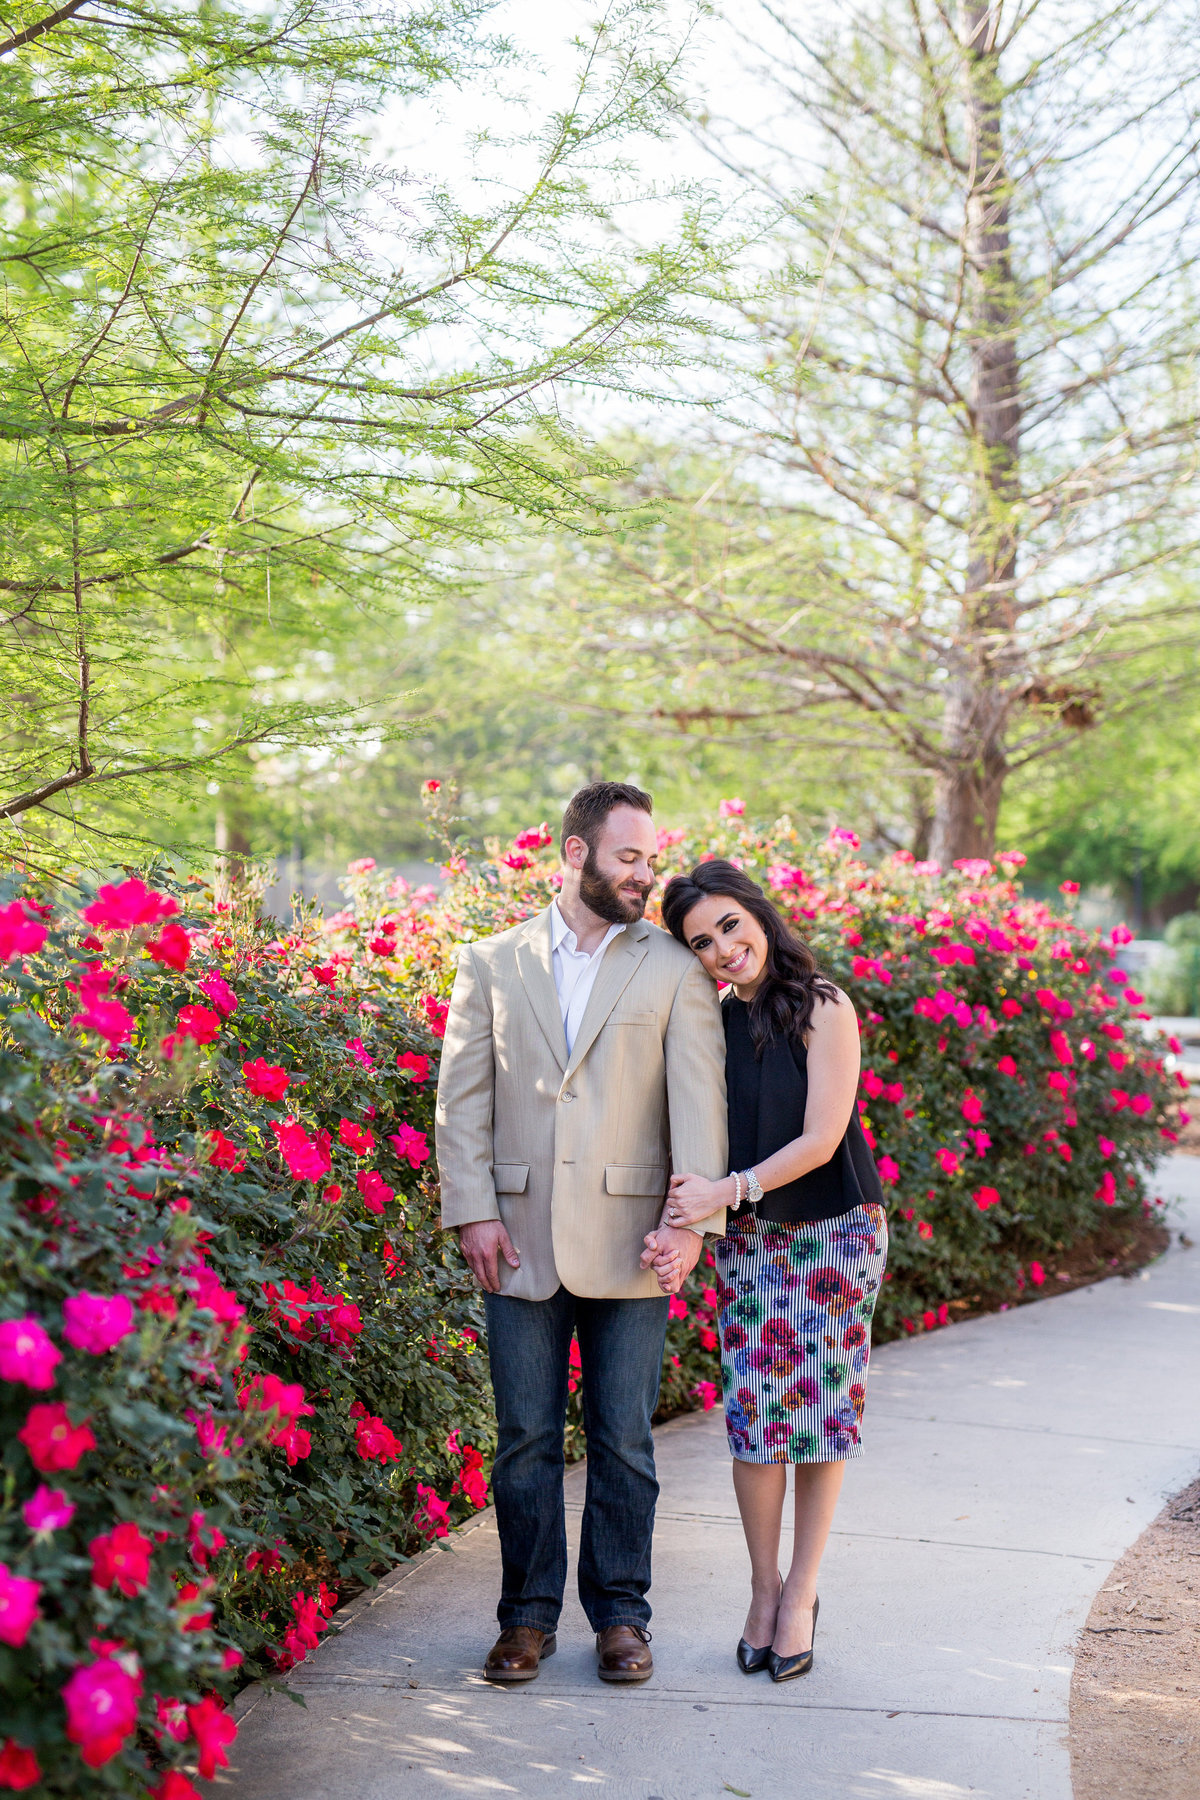 Engagement photography session of woman putting her head on the shoulder of her fiancé standing next to roses and the San Antonio Riverwalk.